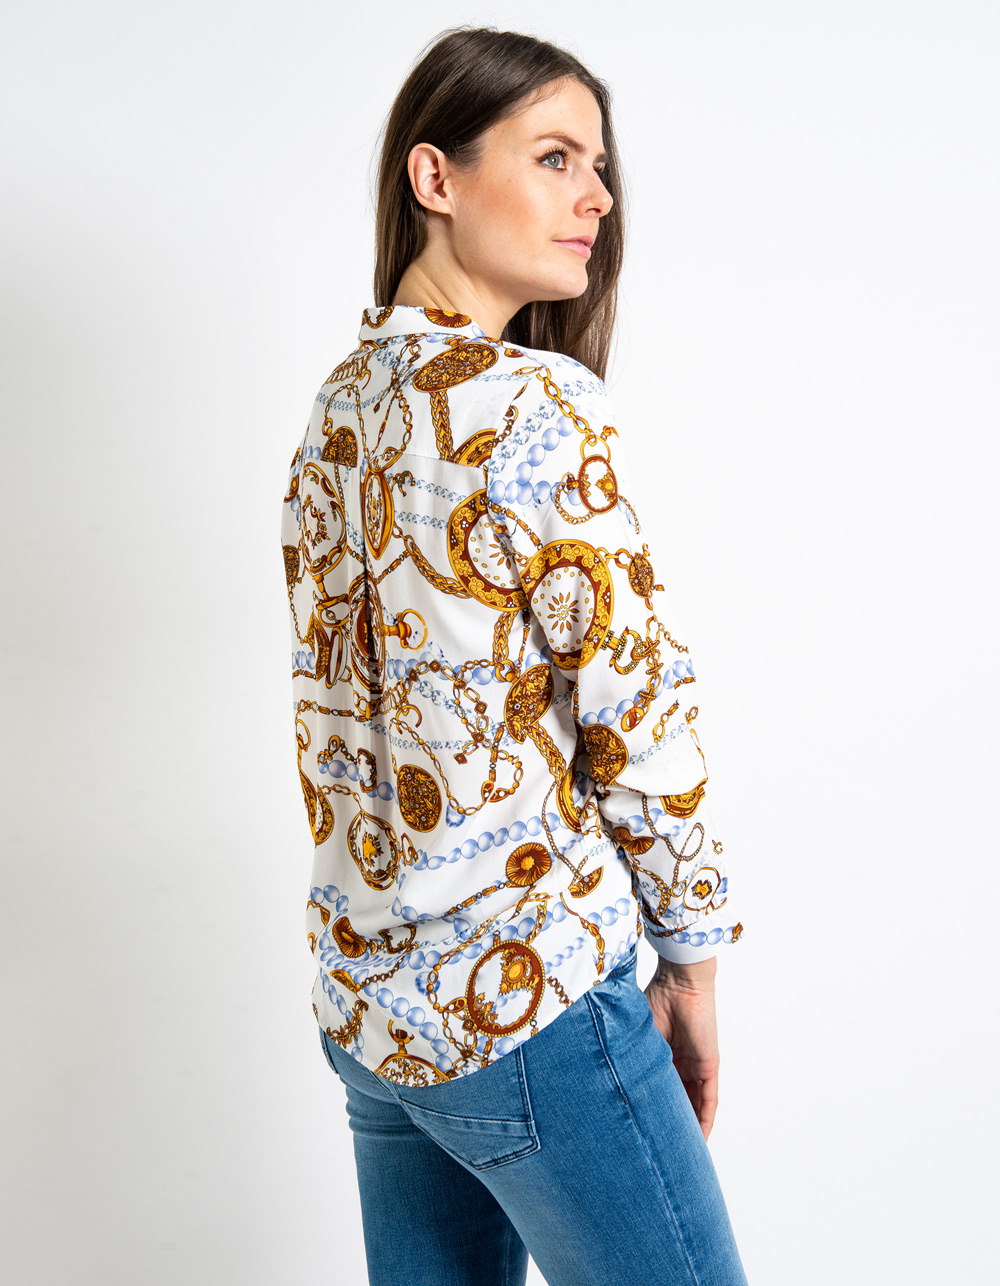 Camisa estampado cadenas - Backside